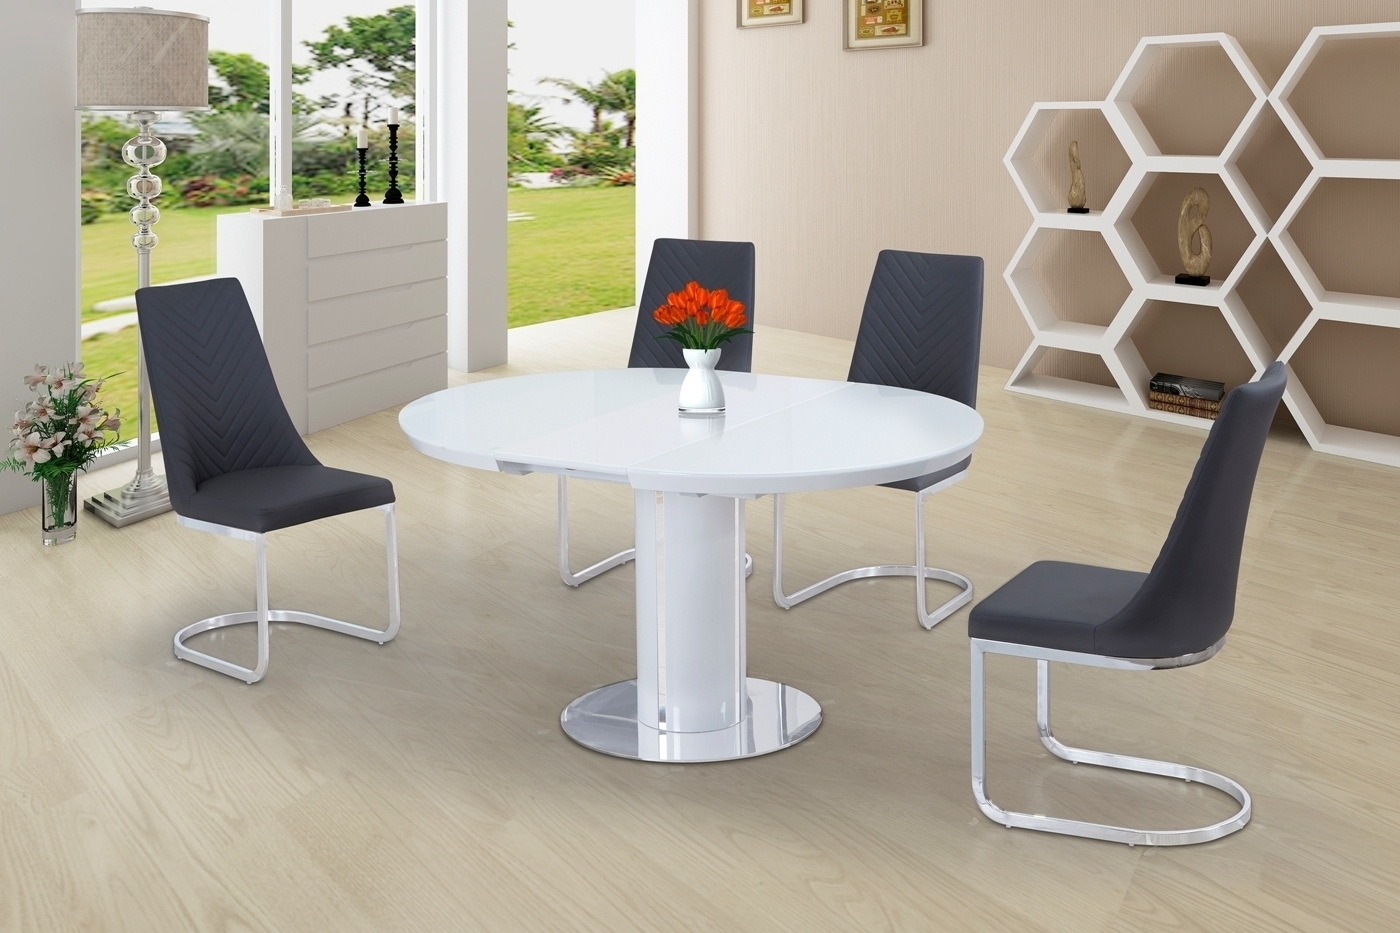 Round White Glass High Gloss Dining Table And 6 Grey Chairs Throughout Well Known Glass And White Gloss Dining Tables (View 21 of 25)